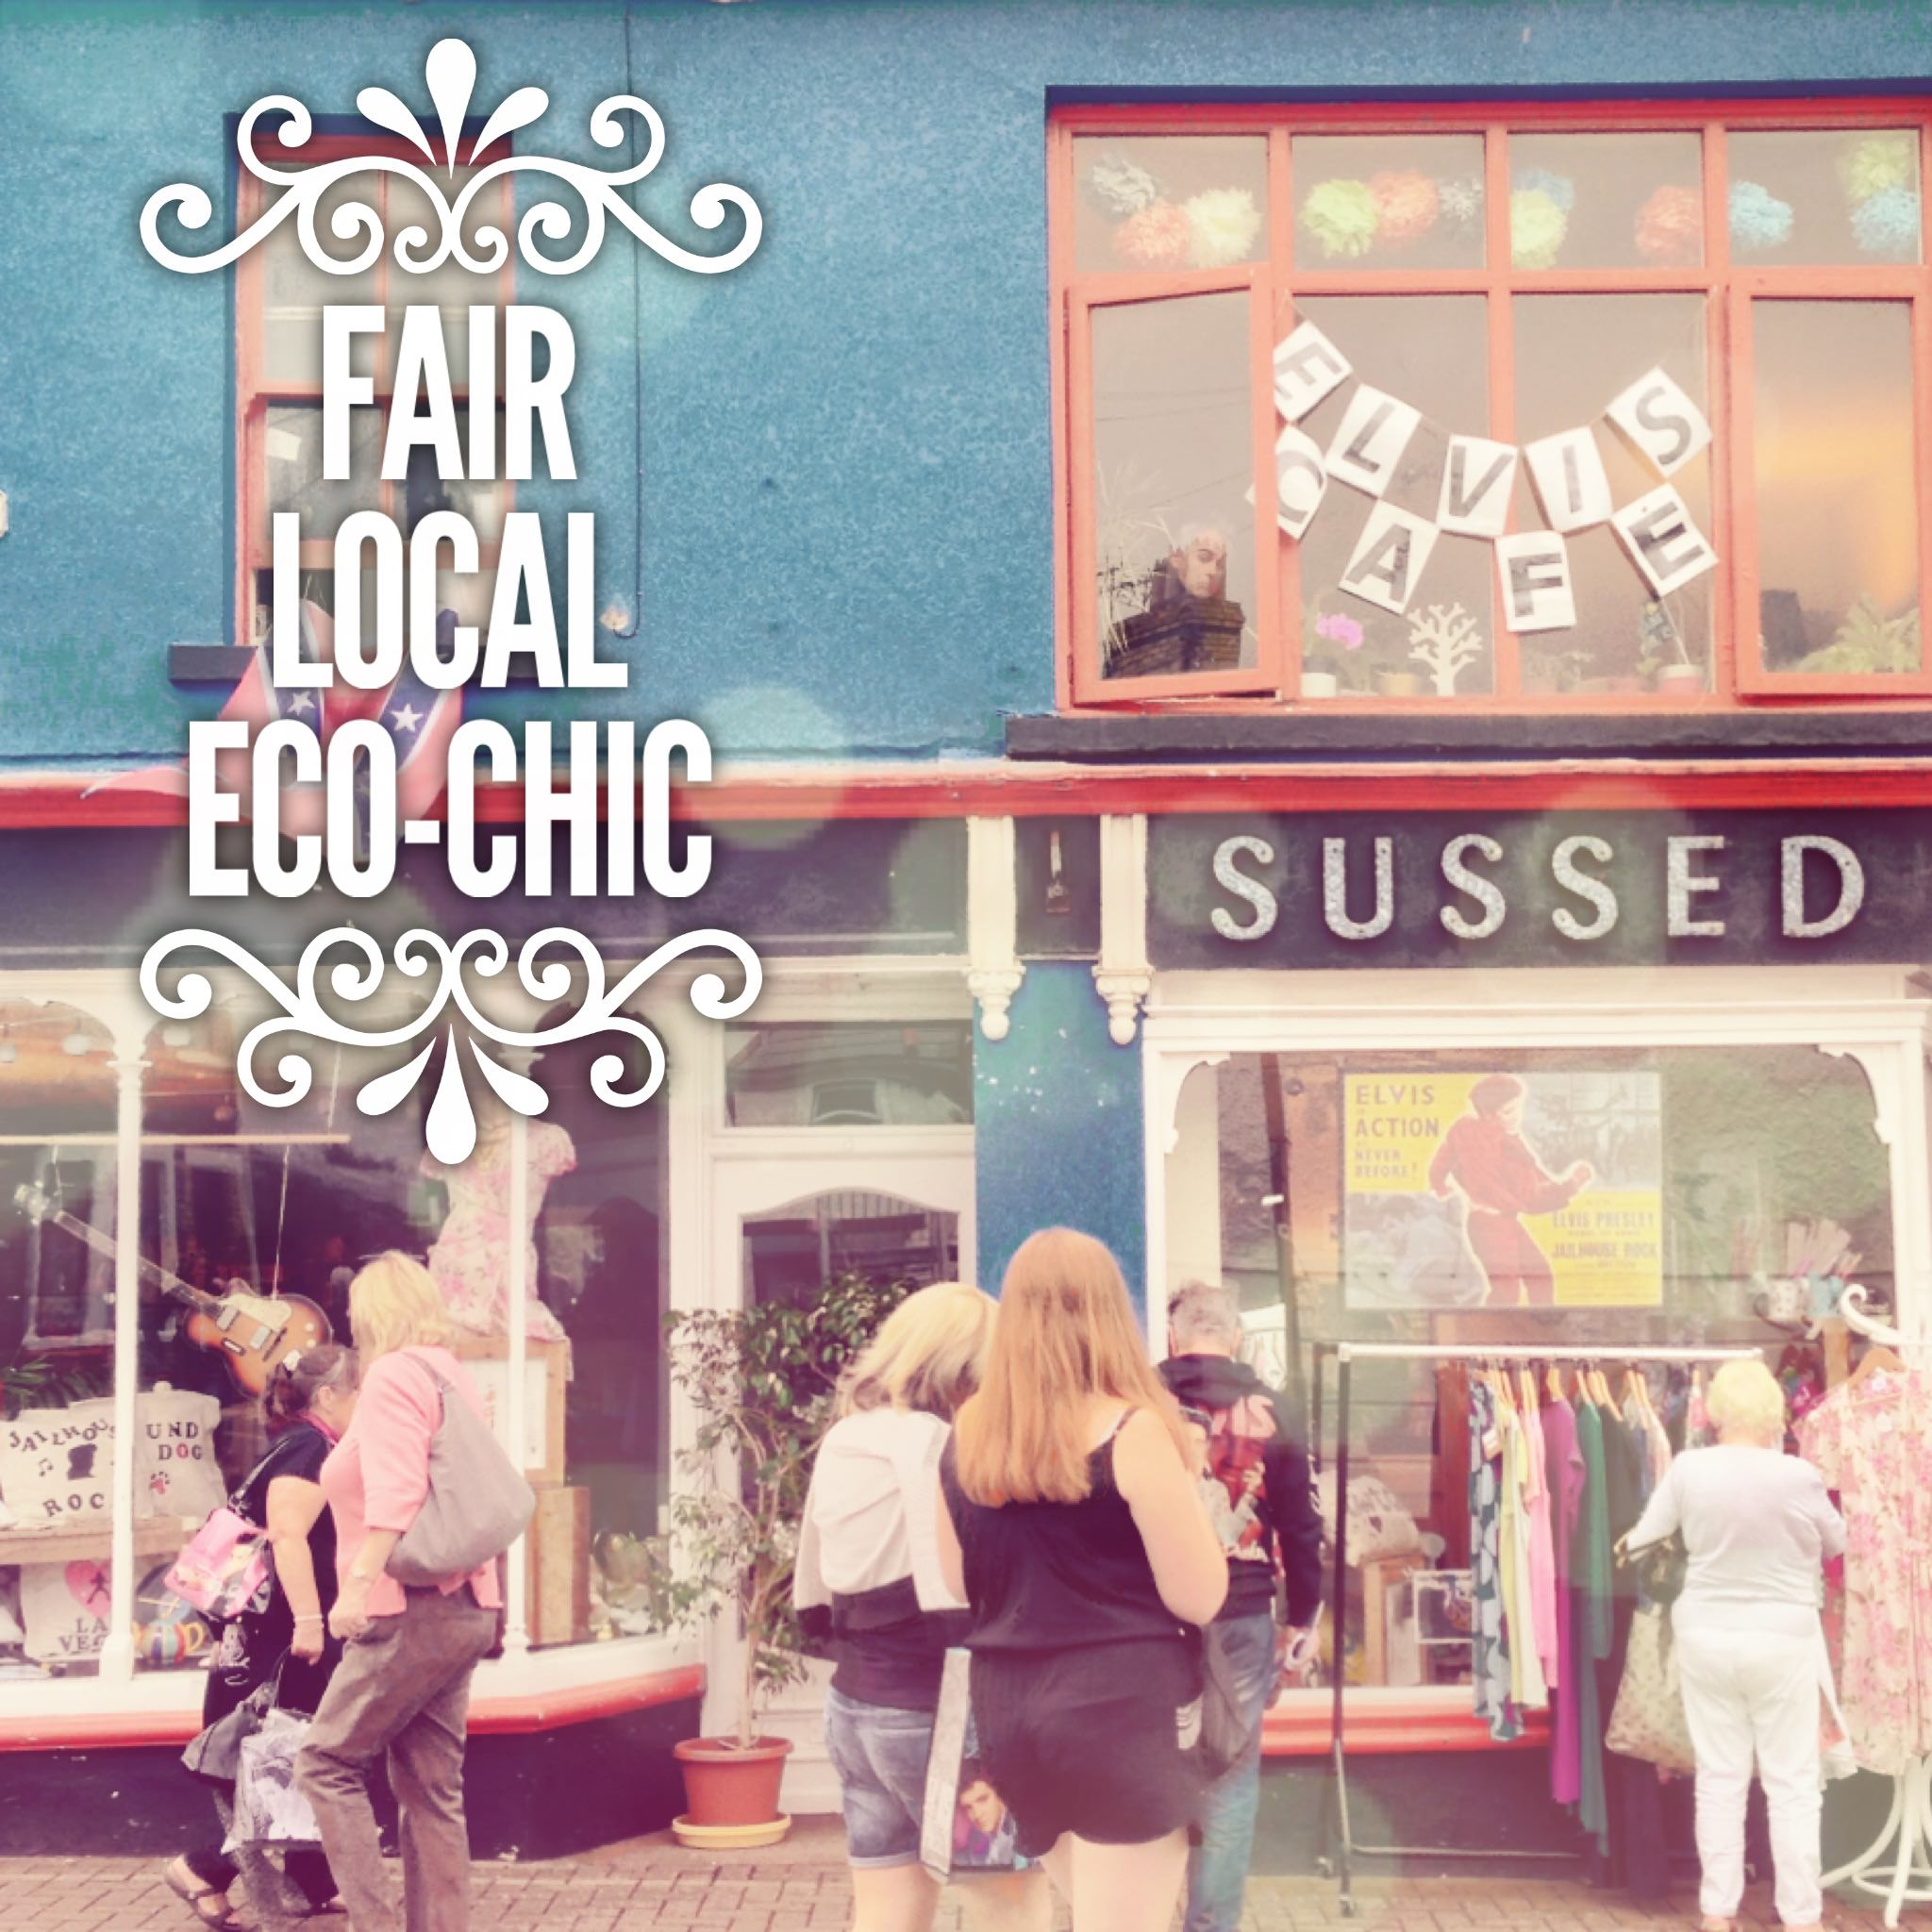 exterior sussed fair local ecochic.jpg